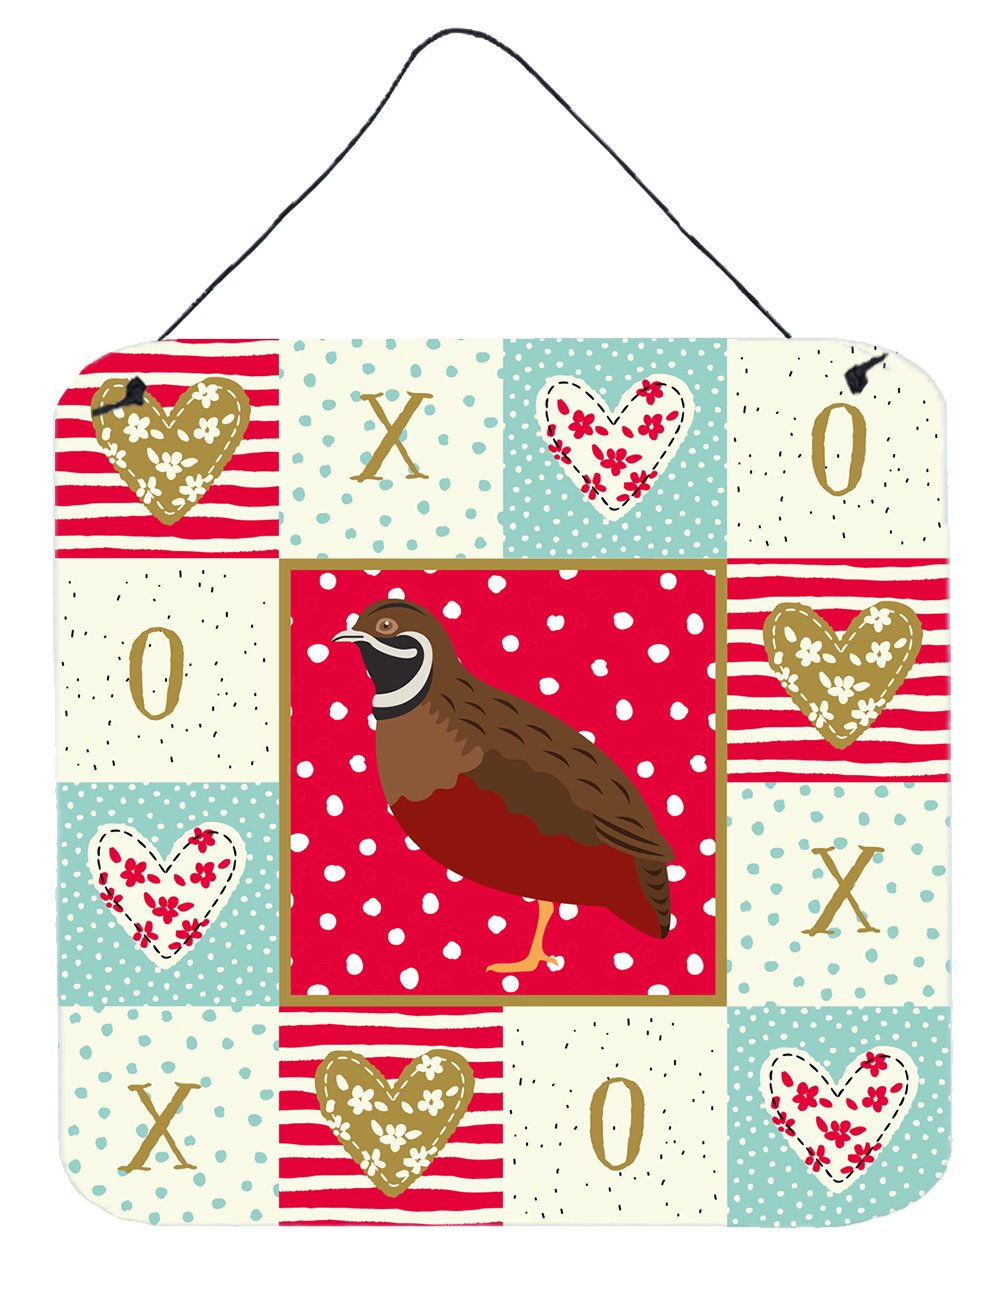 Chinese Painted or King Quail Love Wall or Door Hanging Prints CK5383DS66 by Caroline's Treasures